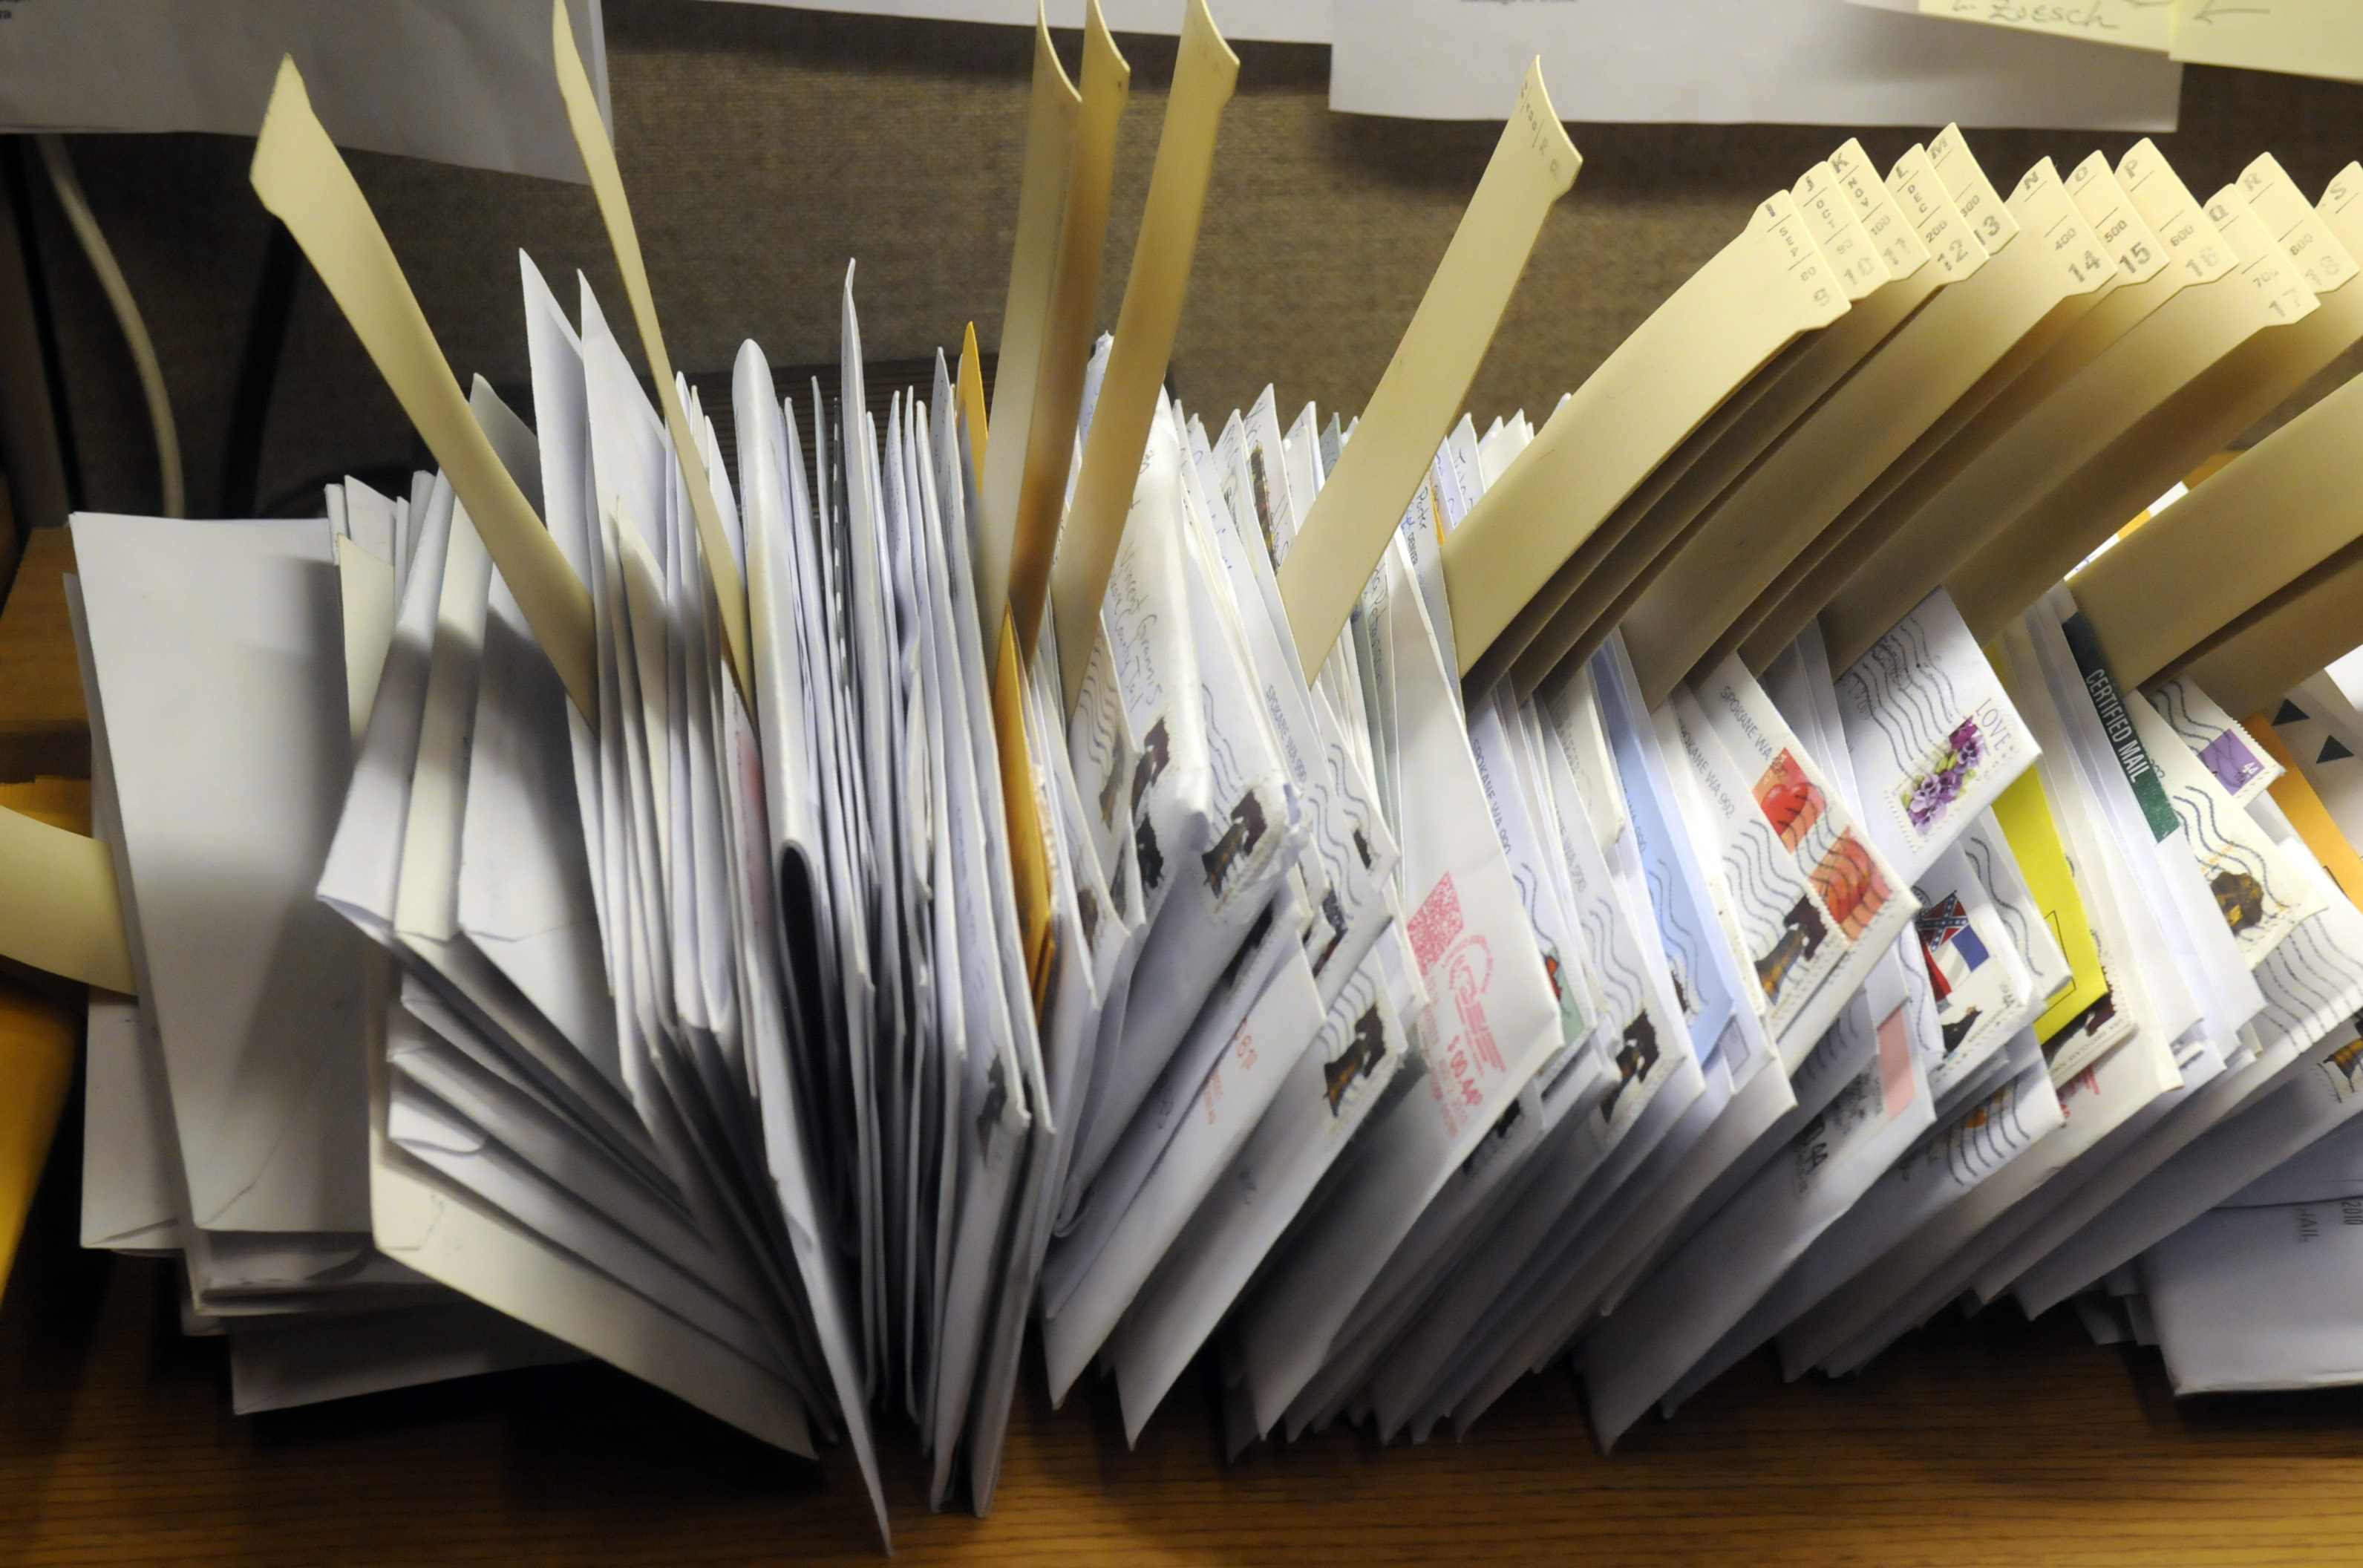 14 MAILCHANGES2 Spokane County will pay